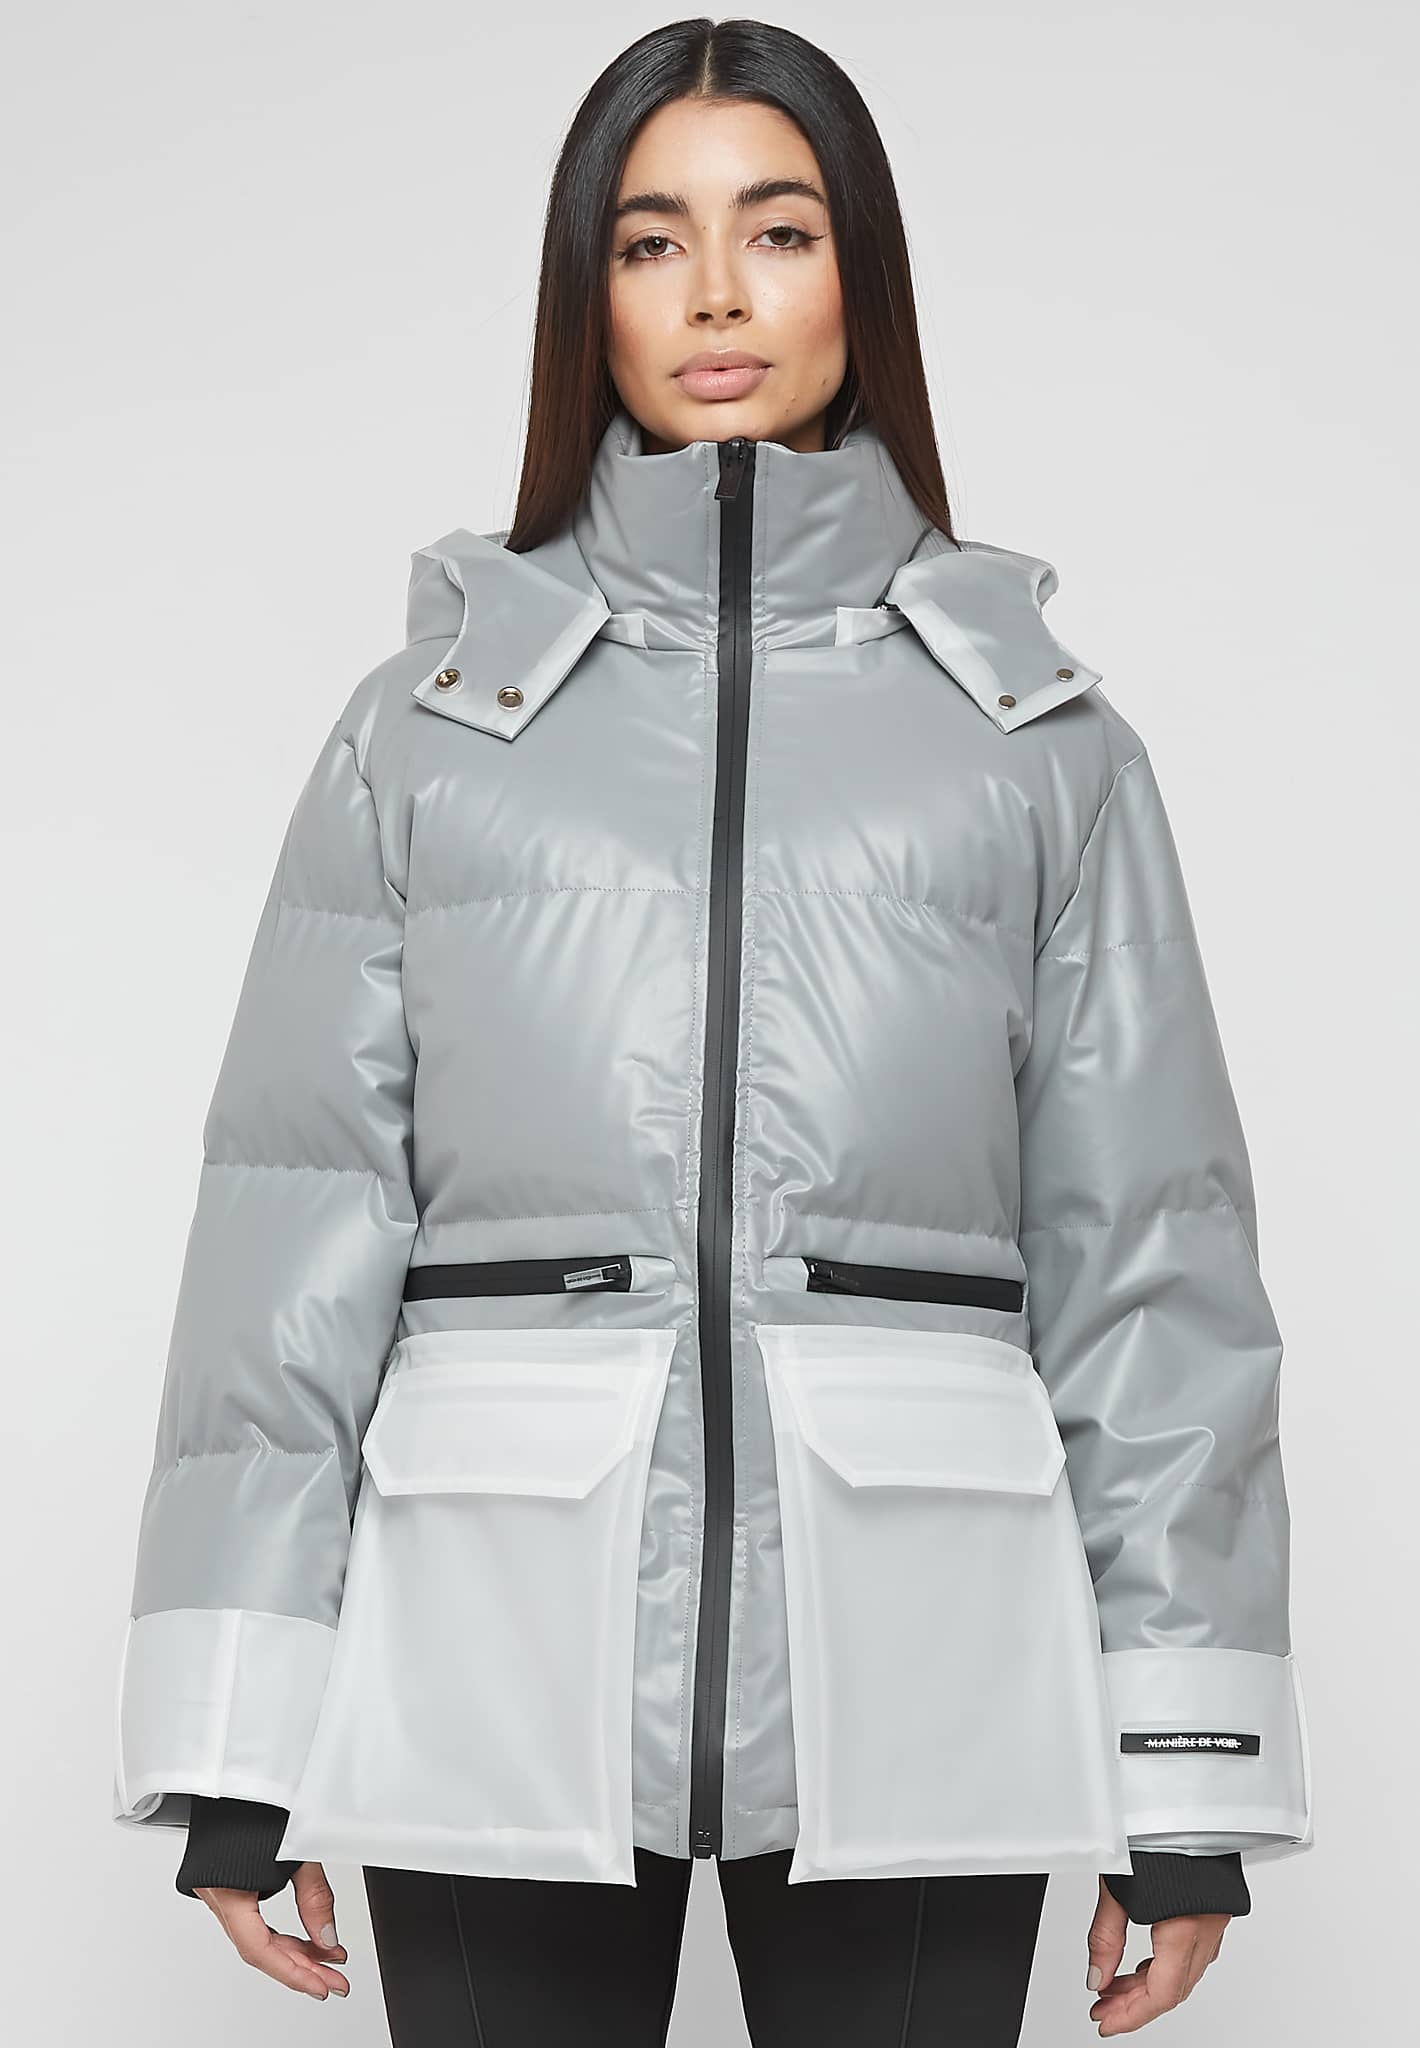 Limited Edition Translucent Puffer Jacket - Frosted